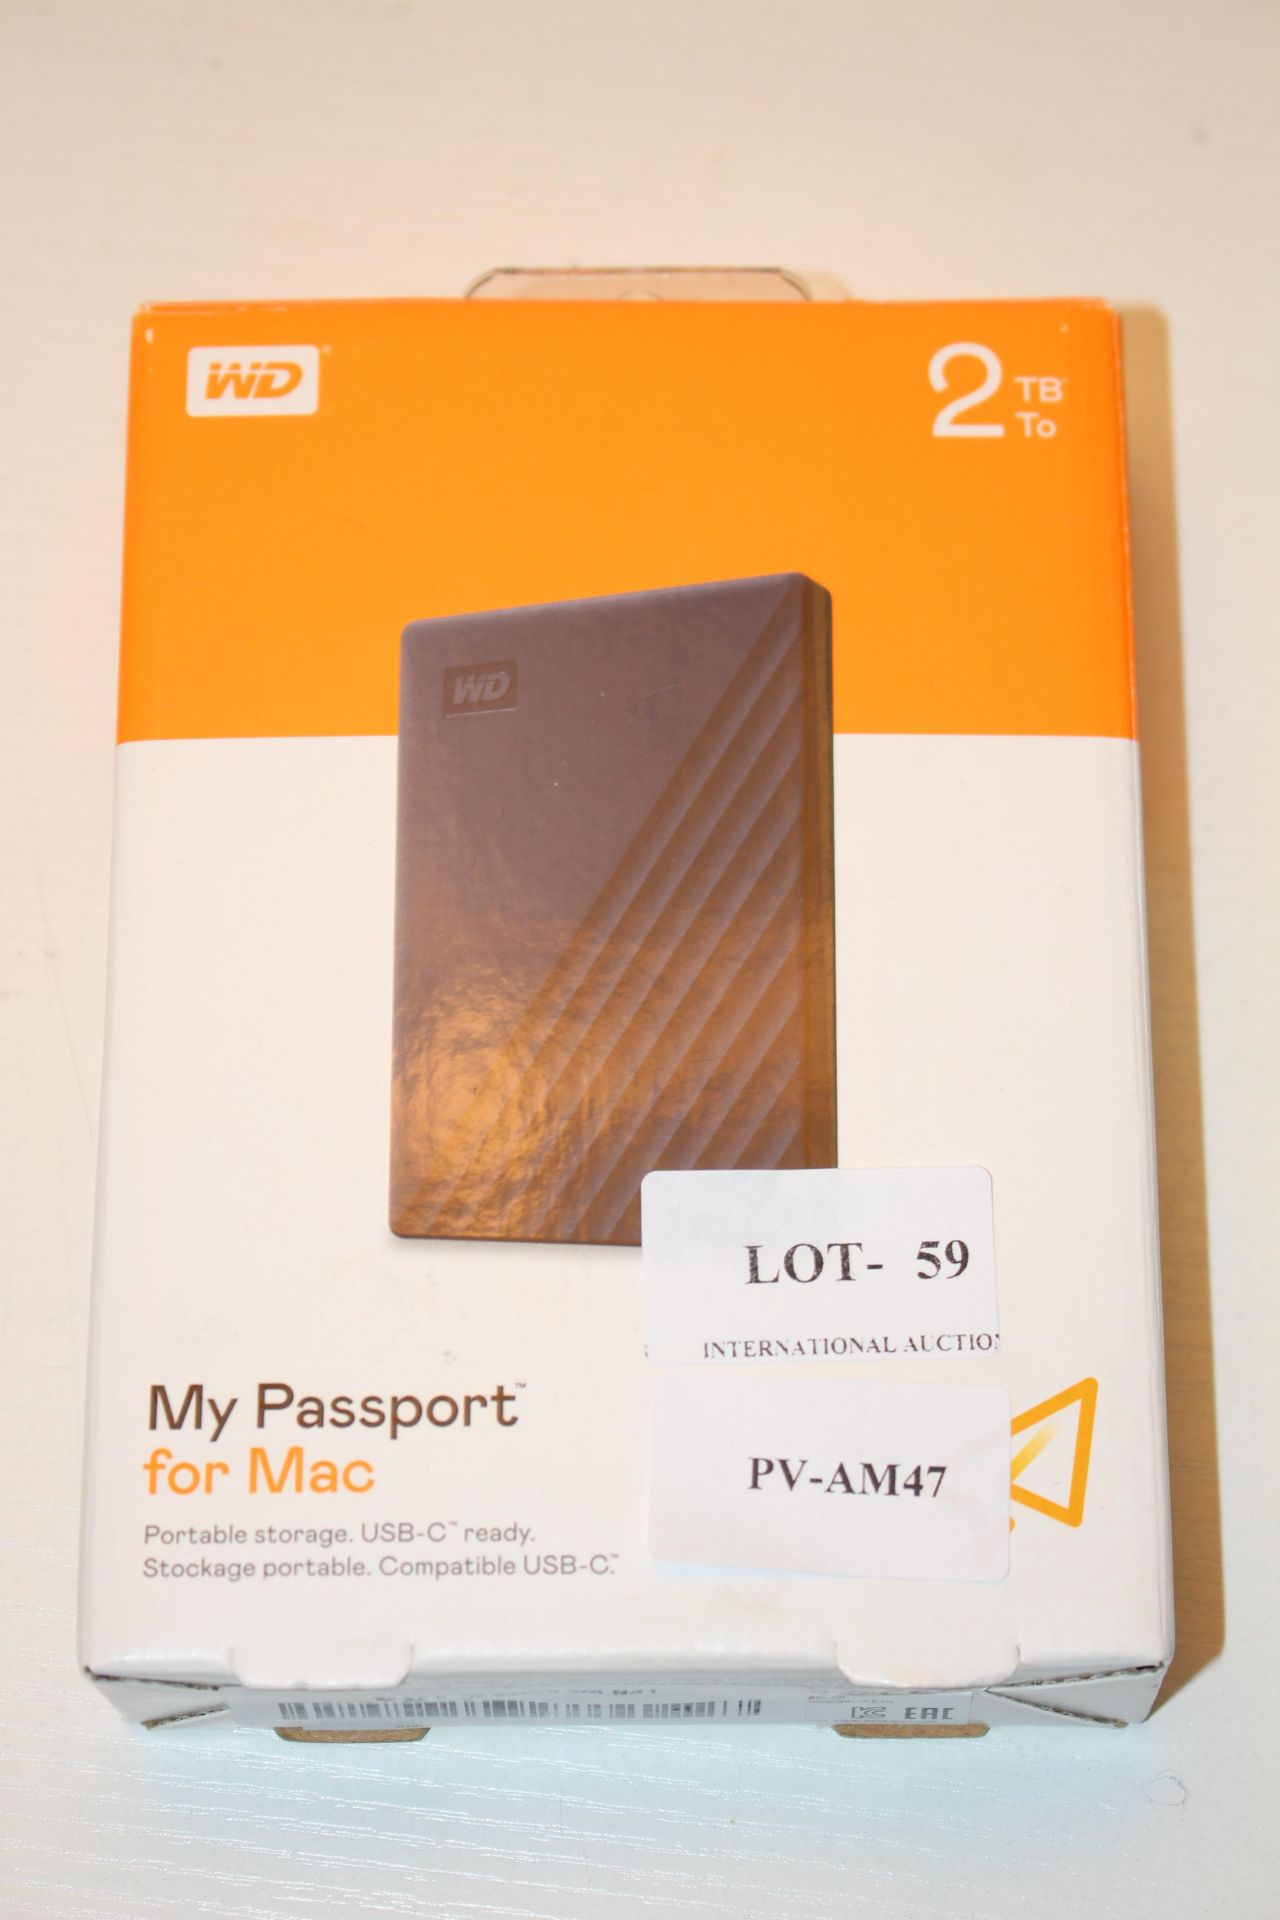 BOXED WD MY PASSPORT FOR MAC 2TB RRP £60.00Condition ReportAppraisal Available on Request- All Items